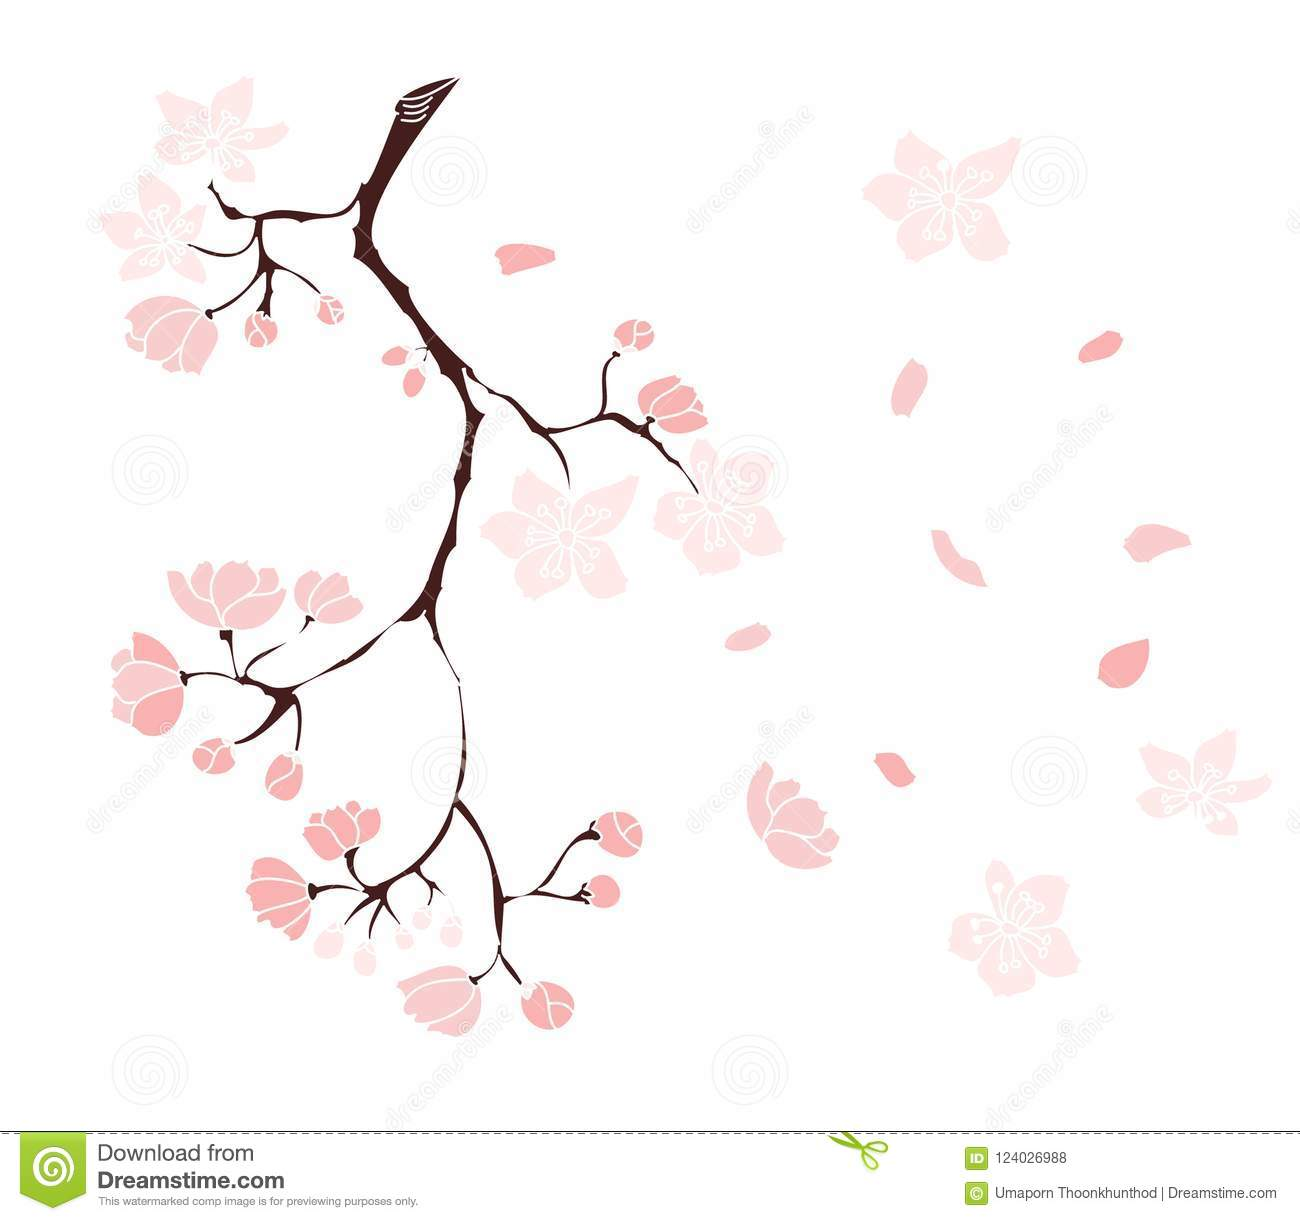 Sakura flower for printing on paper stock vector illustration of download sakura flower for printing on paper stock vector illustration of dragon fighting mightylinksfo